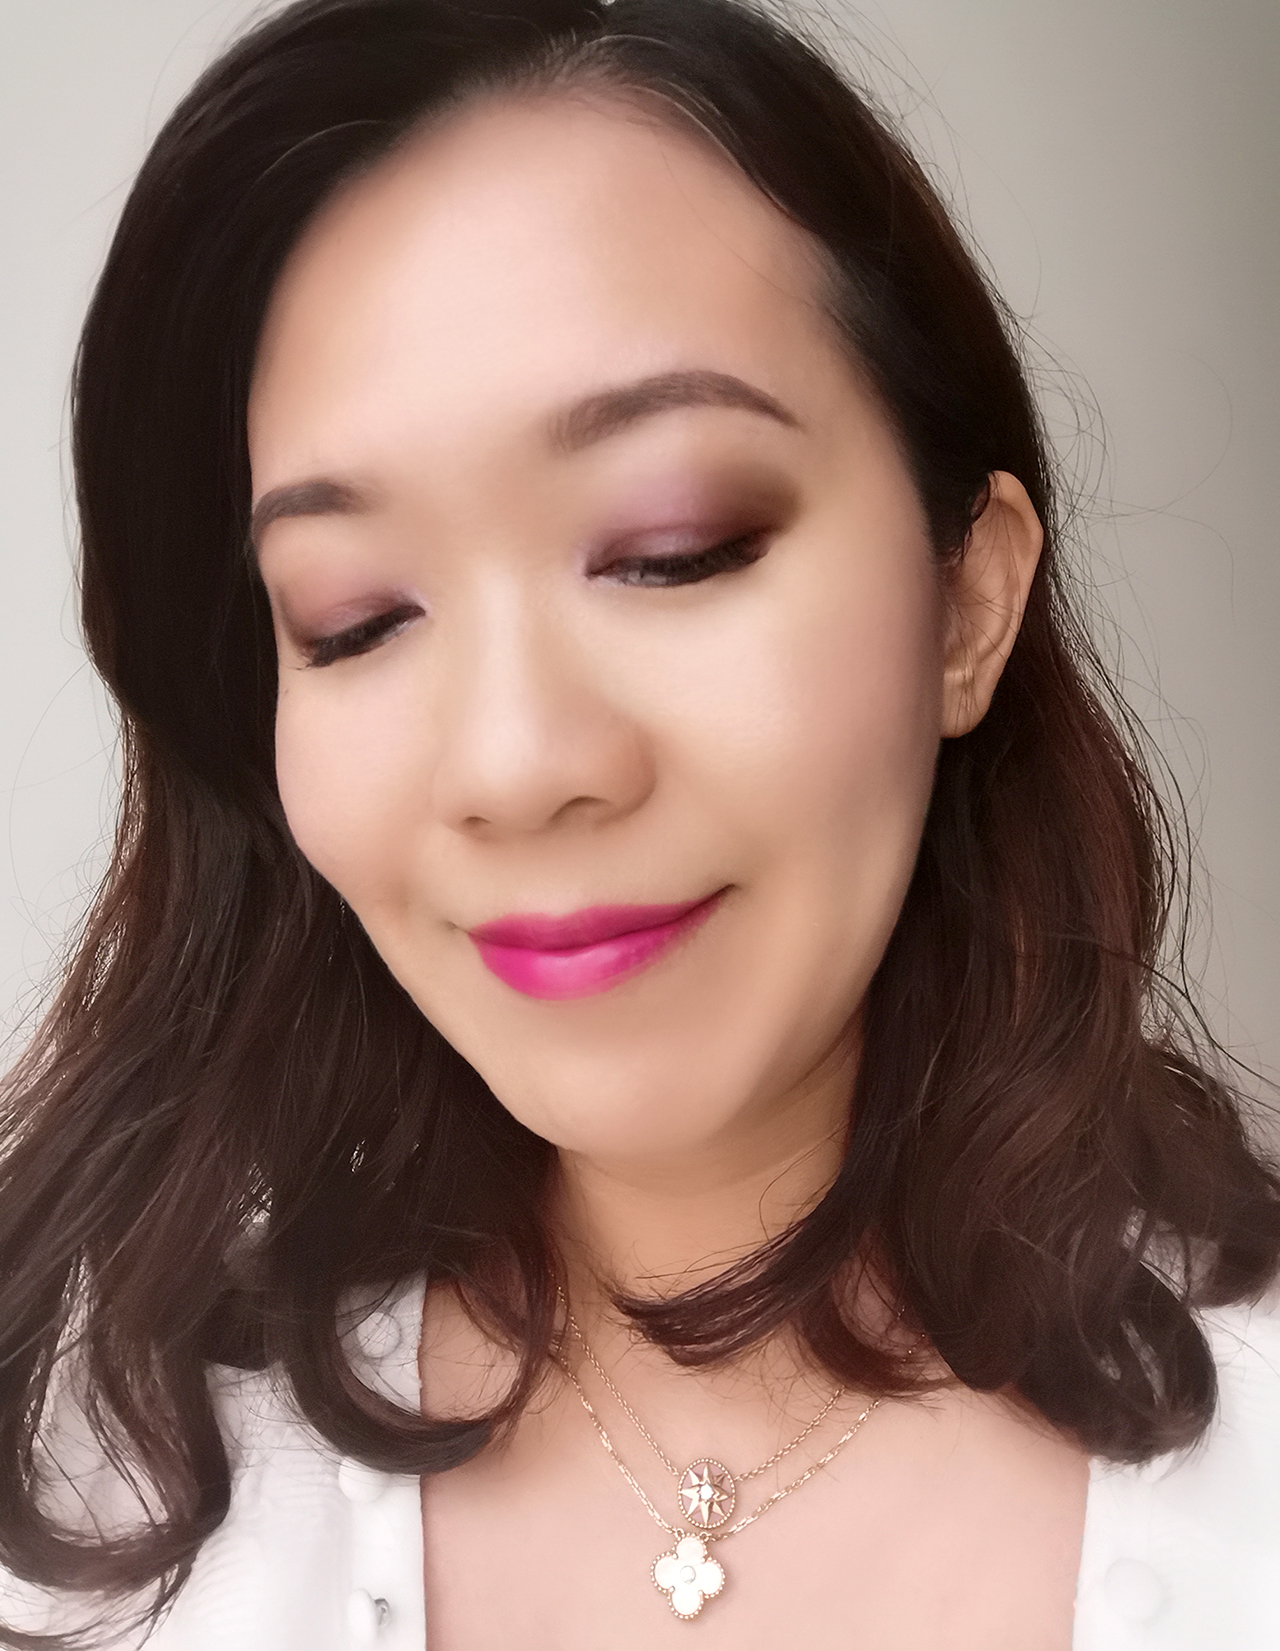 Lunasol Fall 2019 motd ft Eye Coloration 03, Coloring Glaze 01